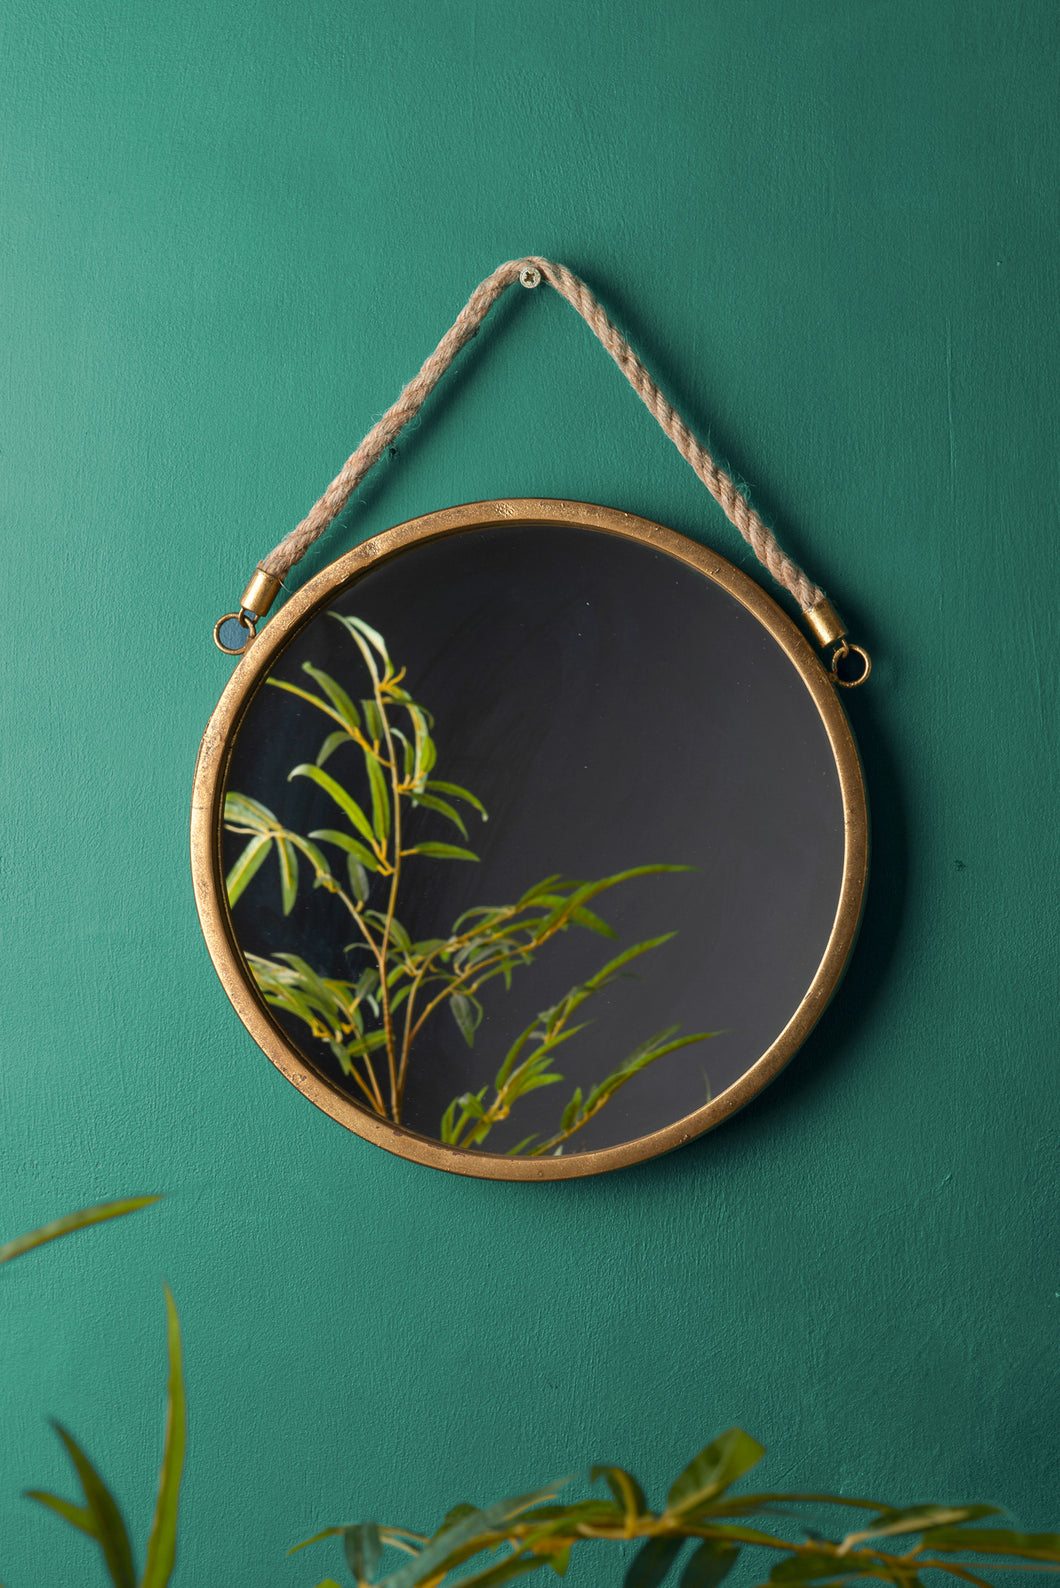 Gold Round Wall Hanging Glass Metal Mirror Hessian Rope Vintage Antique Style - Whaleycorn